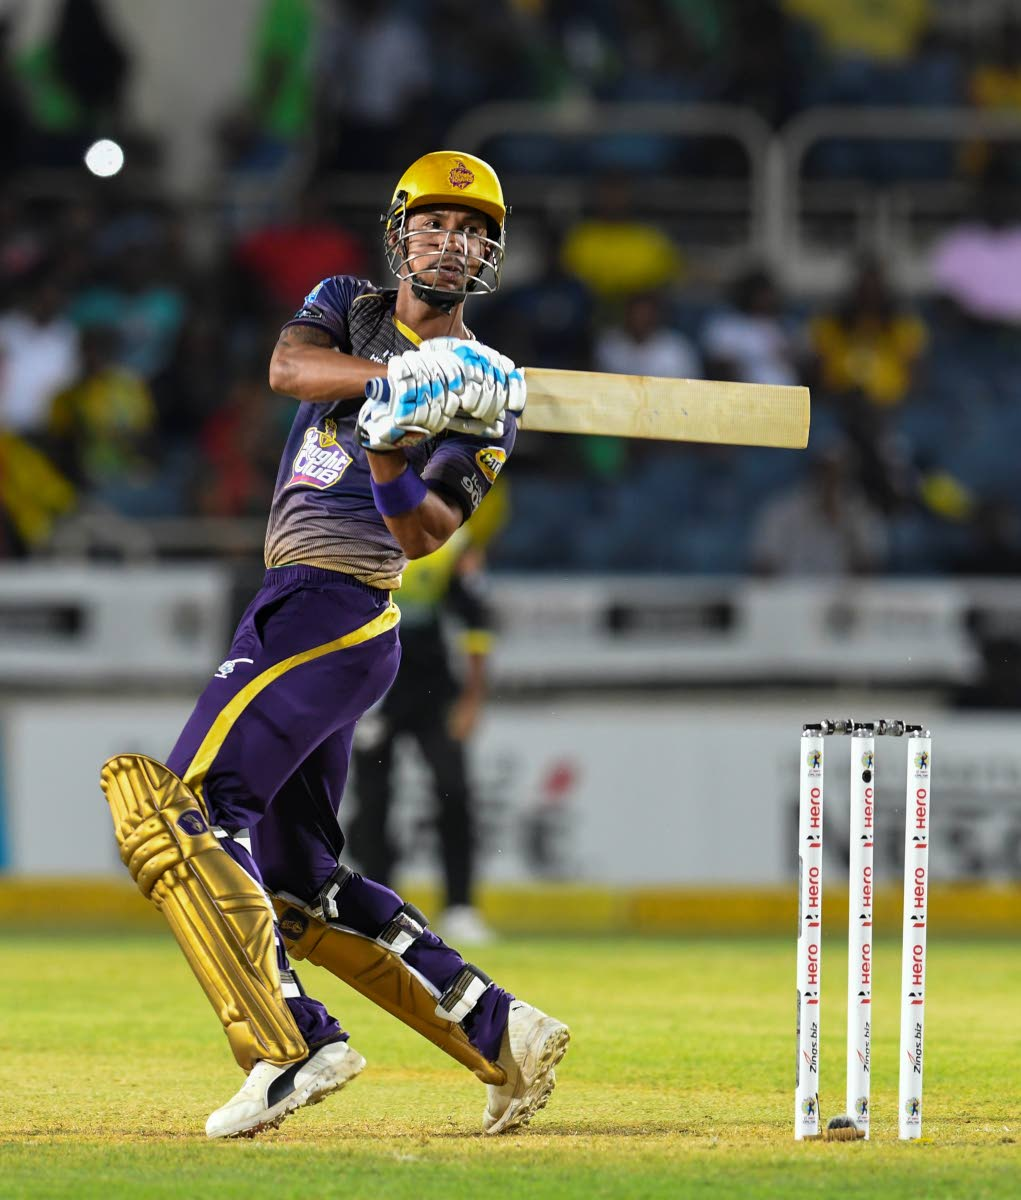 In this handout image provided by CPL T20, Lendl Simmons of Trinbago Knight Riders hits a four during match 10 of the Hero Caribbean Premier League between Jamaica Tallawahs and TKR at Sabina Park, last Friday, in Kingston, Jamaica.